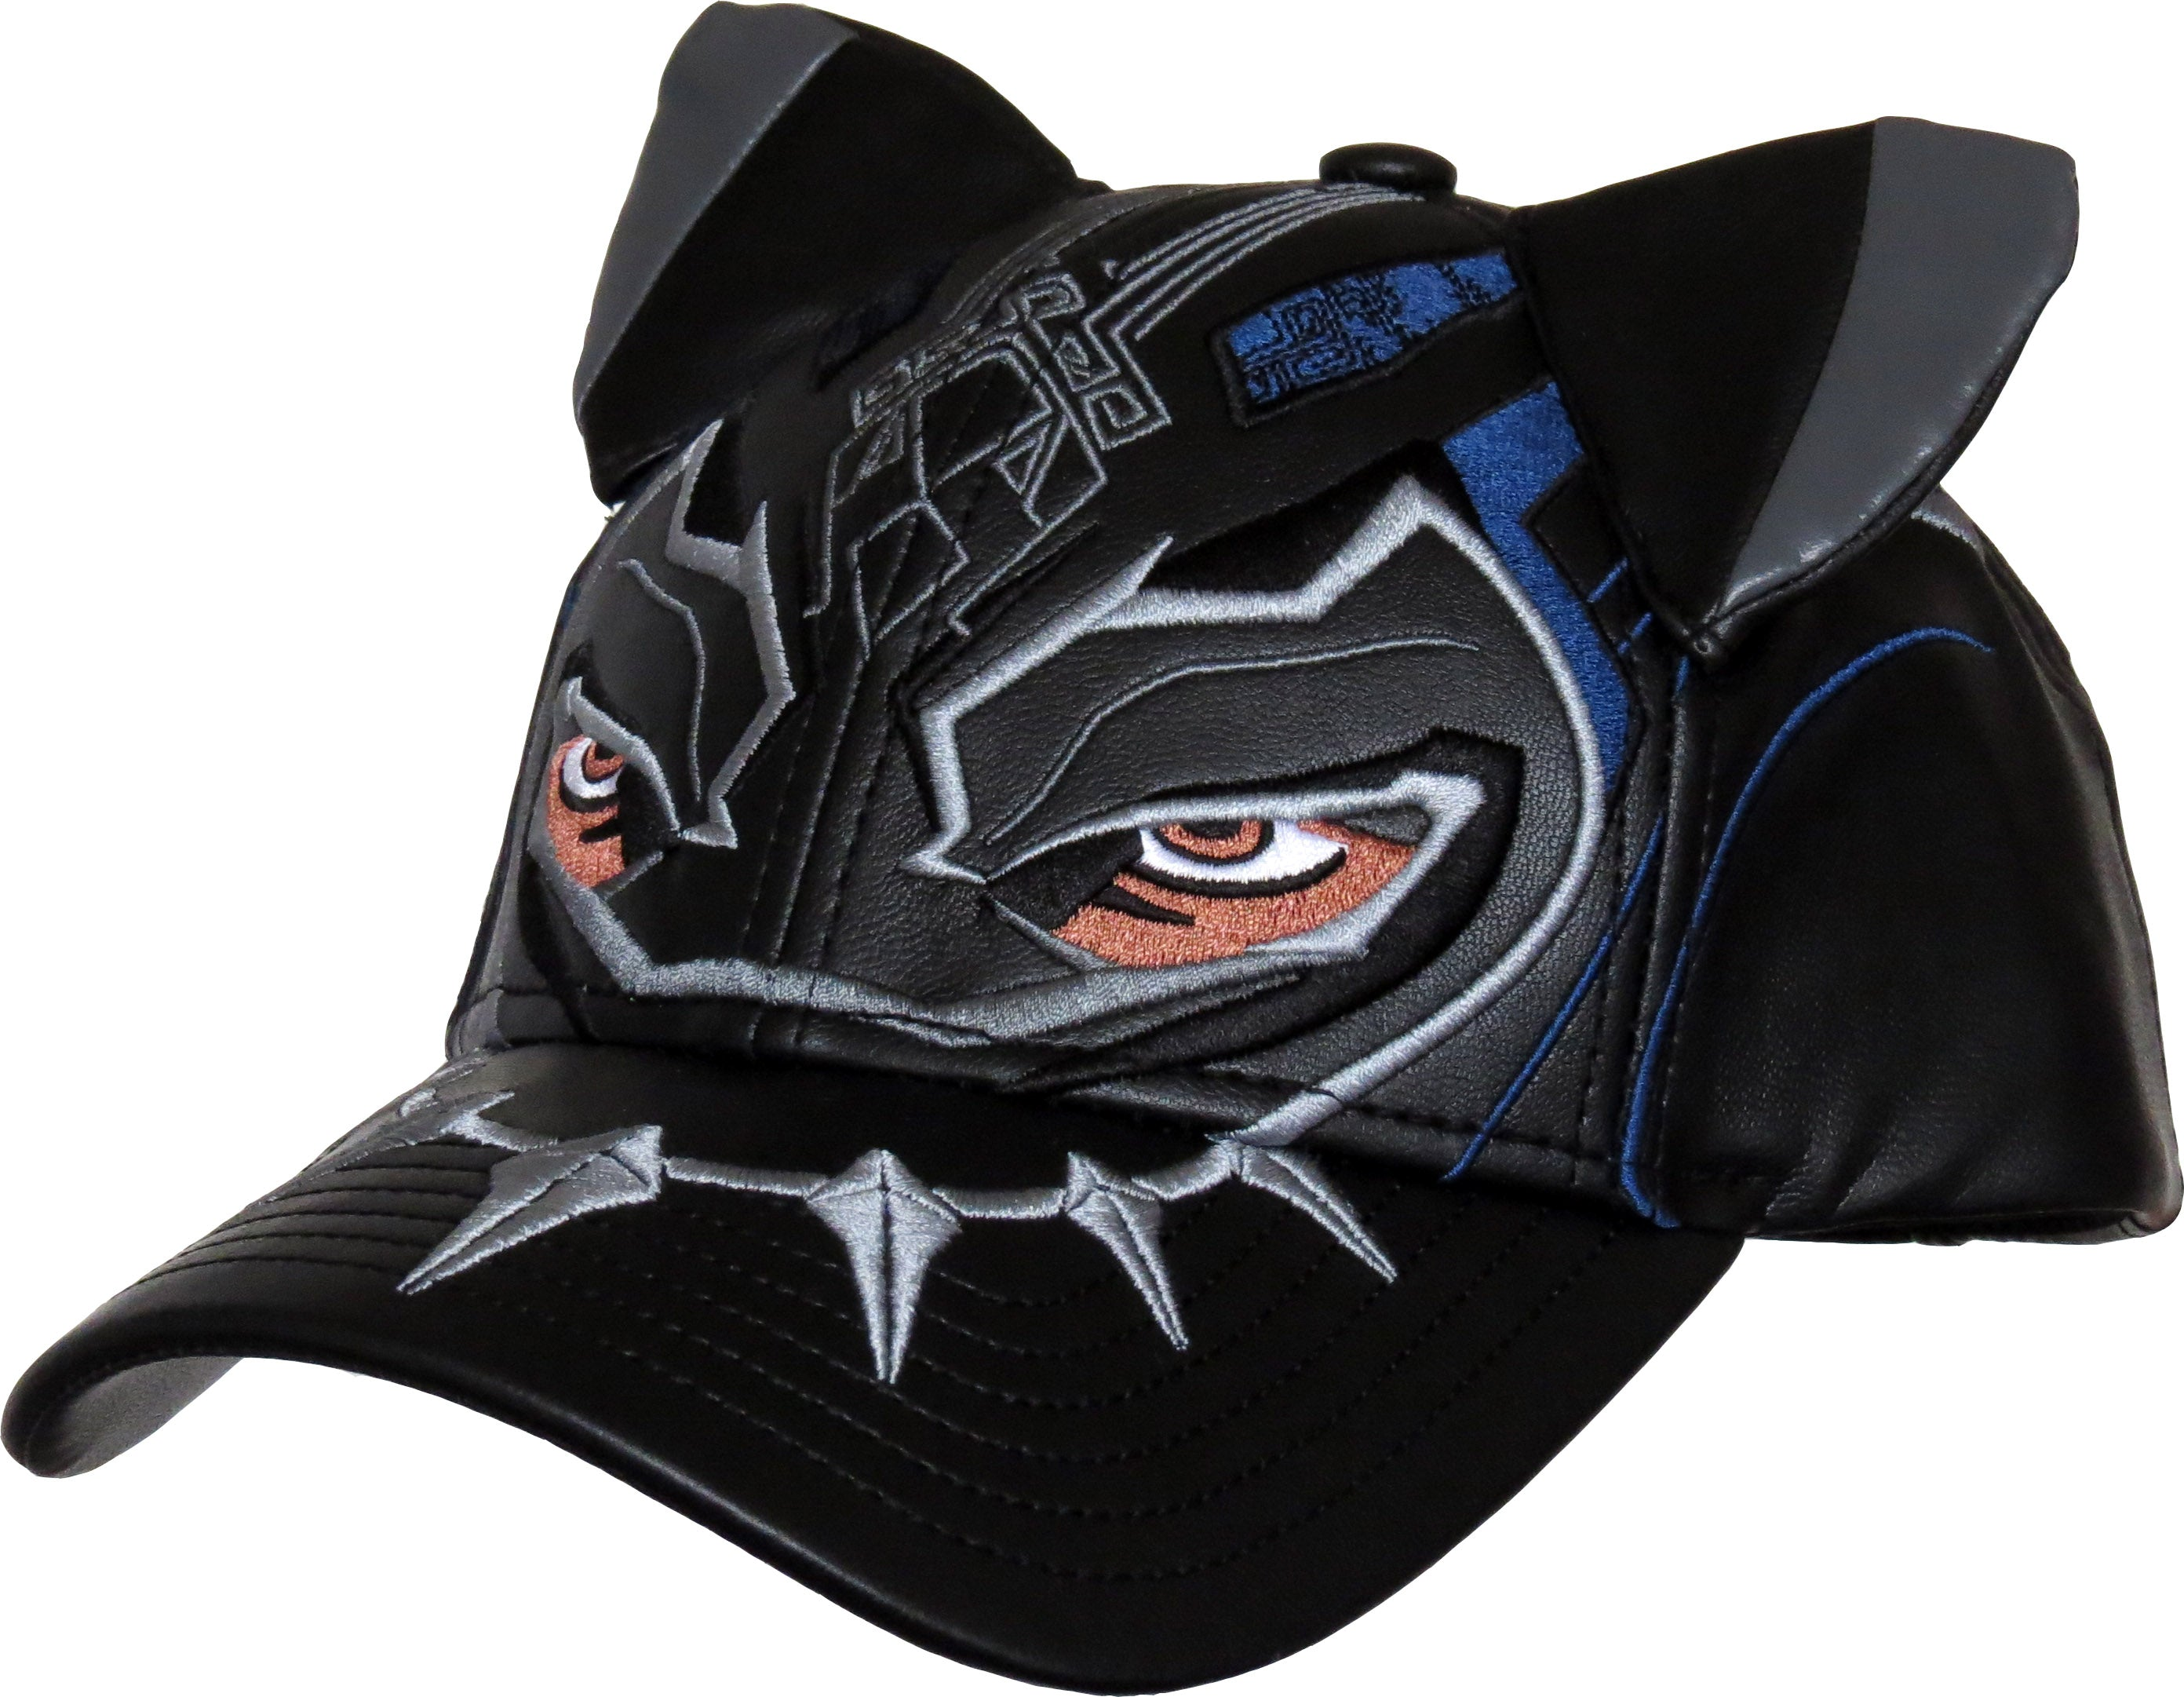 size 40 98b6b 04462 Marvel Comics Black Panther Mask Adjustable Cap - pumpheadgear, baseball  caps ...